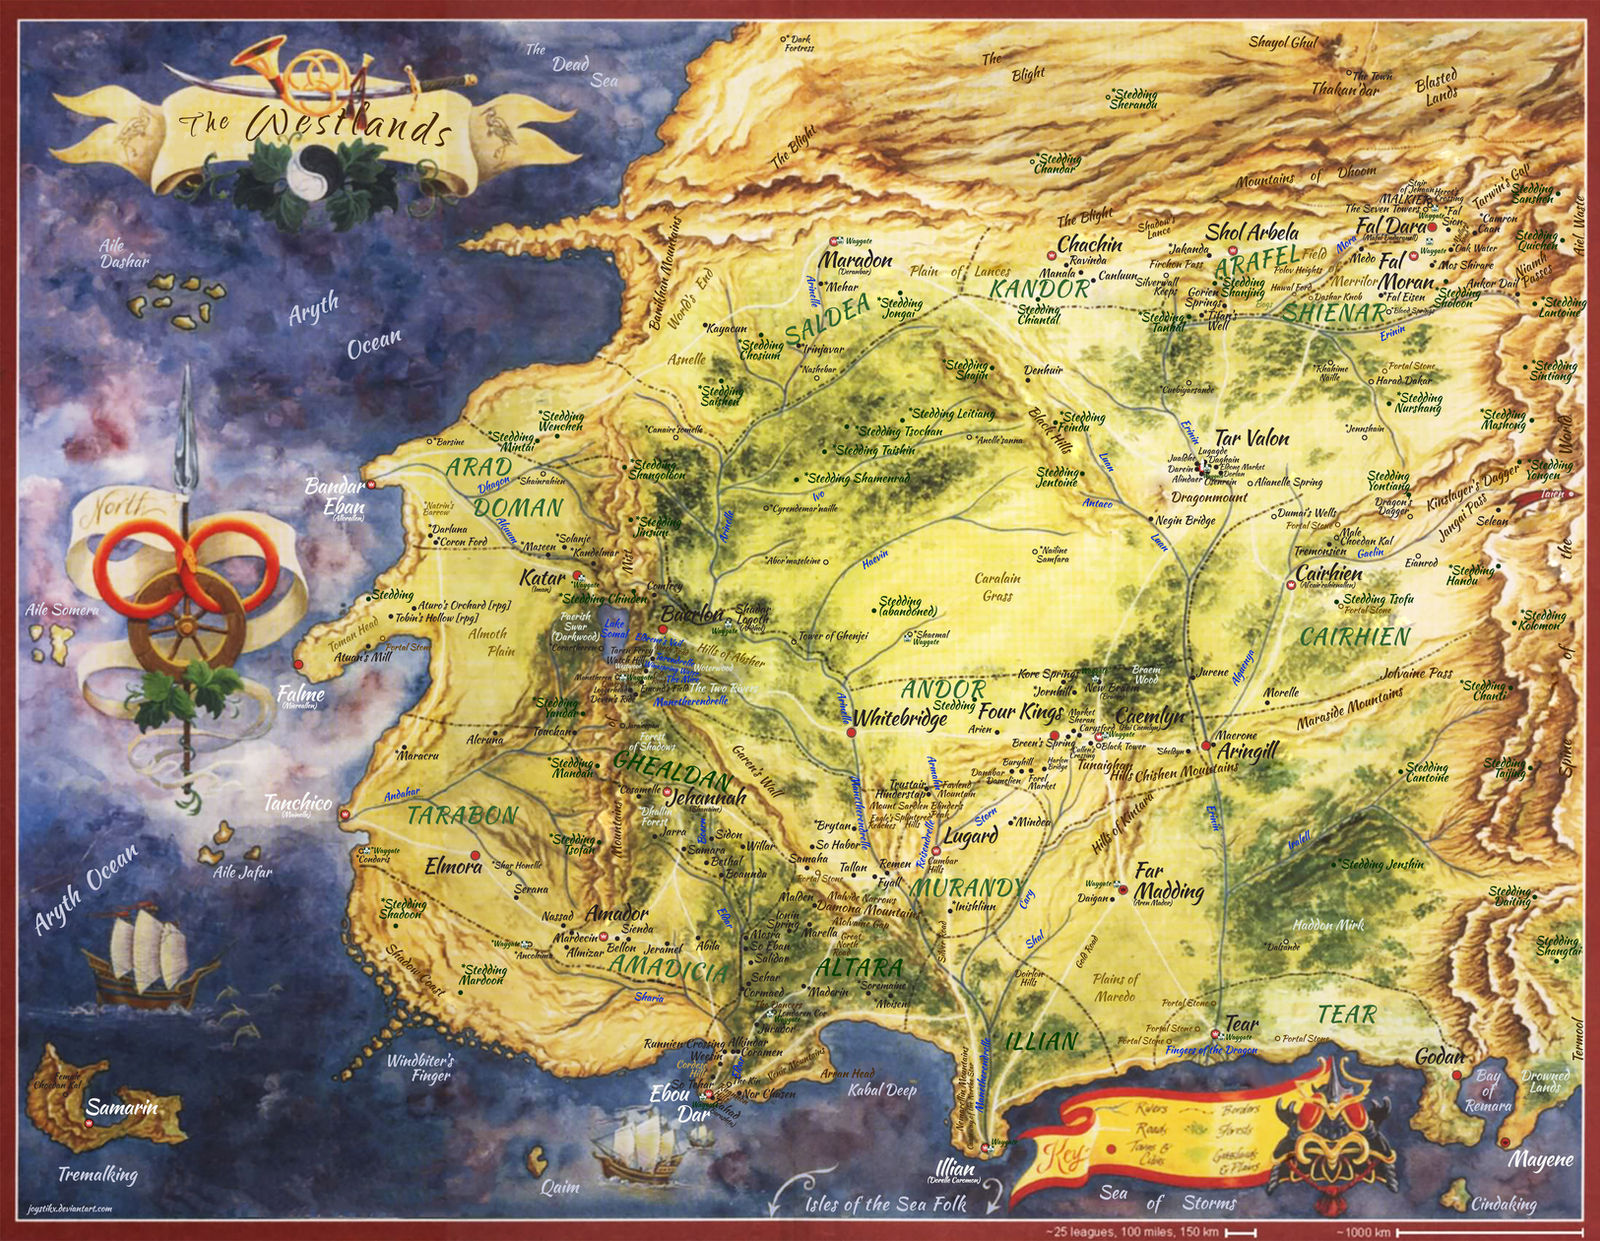 Wheel Of Time World Map Wheel Of Time   Westland map by joystikX on DeviantArt